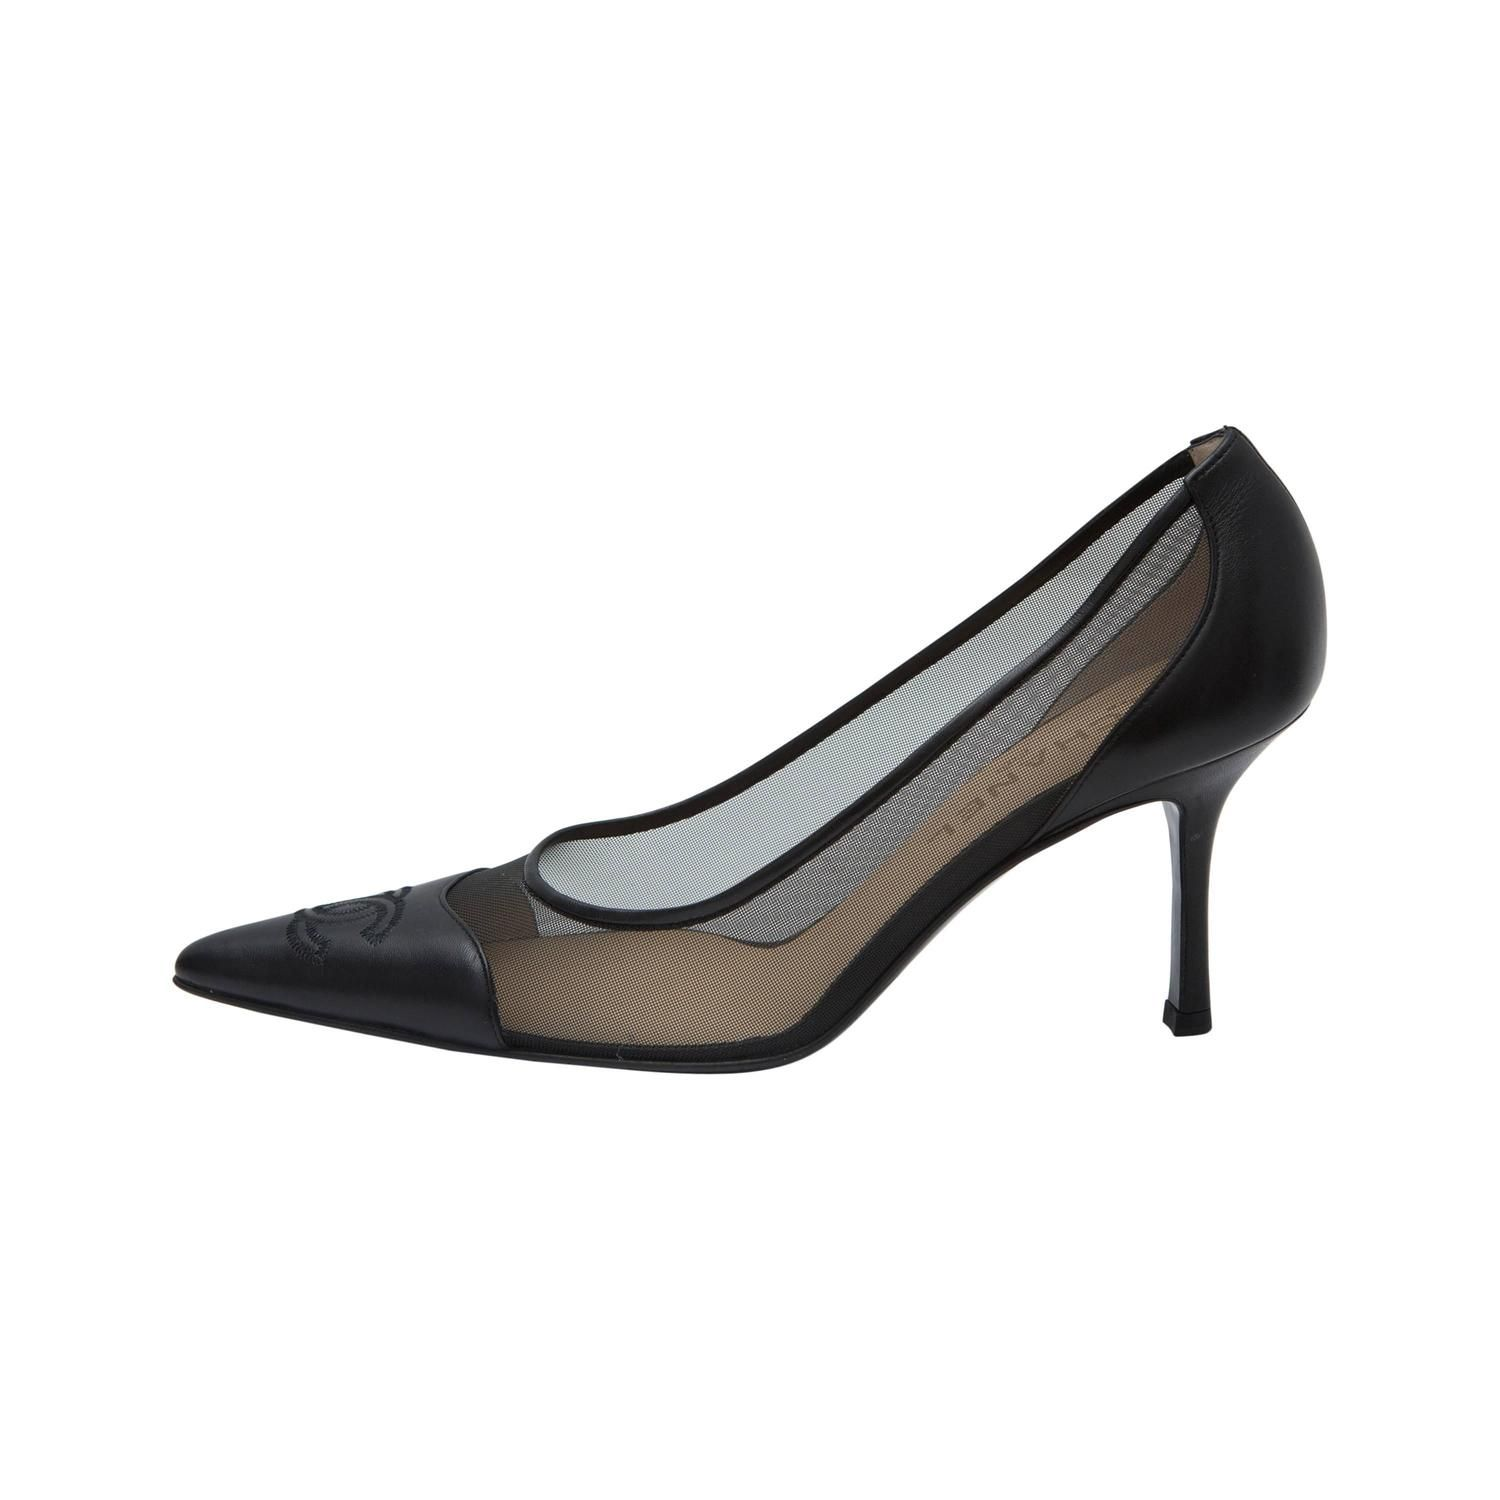 2ff9bc6efdbc Chanel Pointy Toe Leather and Mesh Black Kitten Heel Pumps